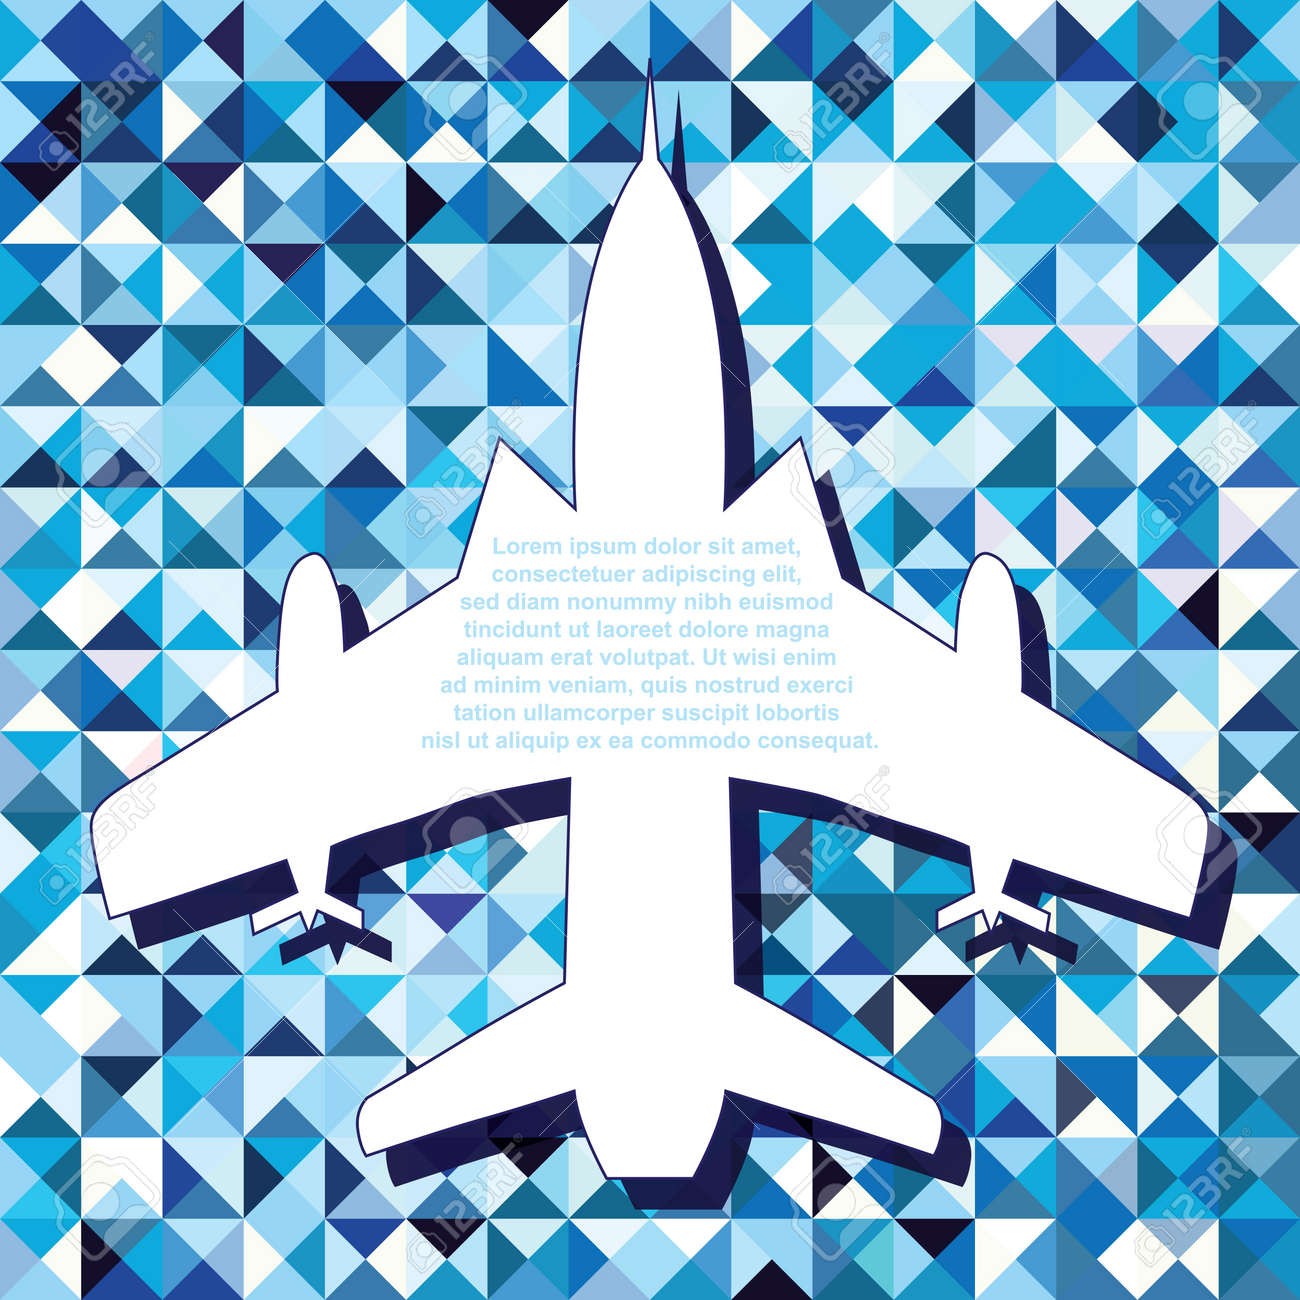 Plane space for text air fly cloud sky geometric blue  seamless travel background  Airplanes vector illustration Stock Vector - 20028261